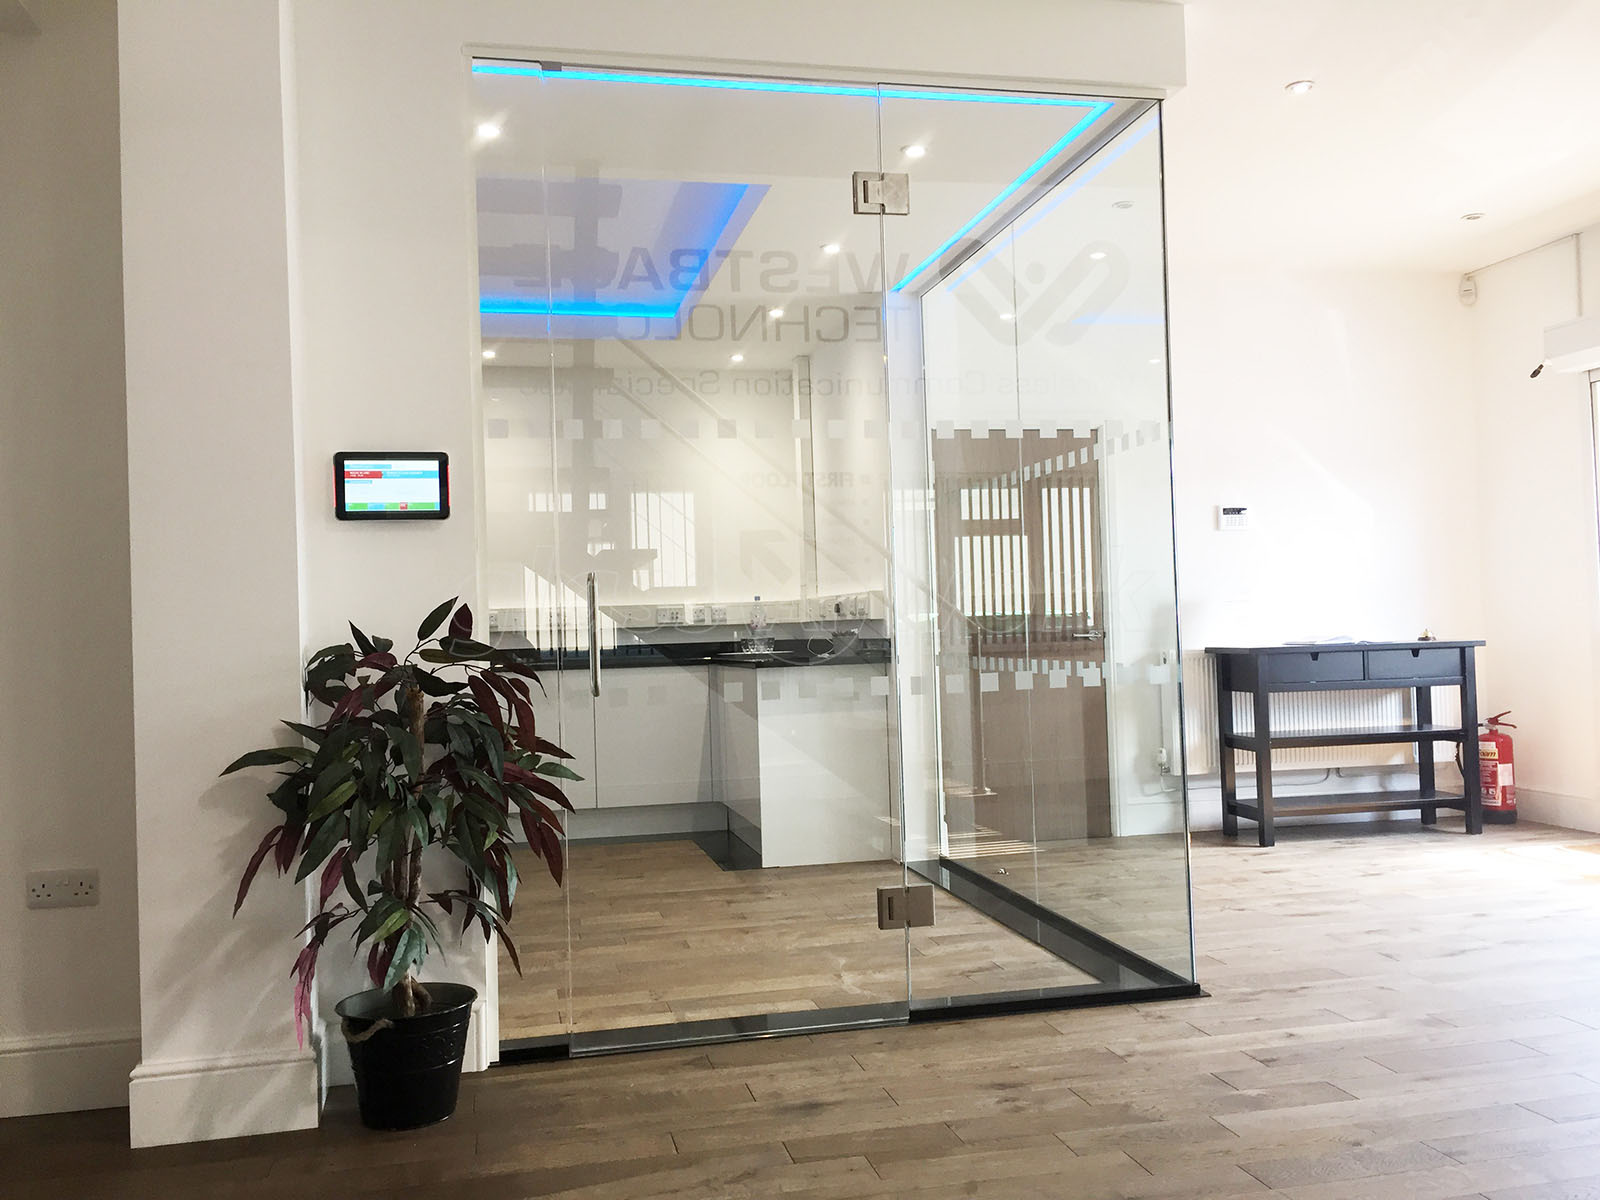 Glass to glass door hinges - Westbase Technology Ltd Monmouthshire Frameless Glass Corner Room With Glass To